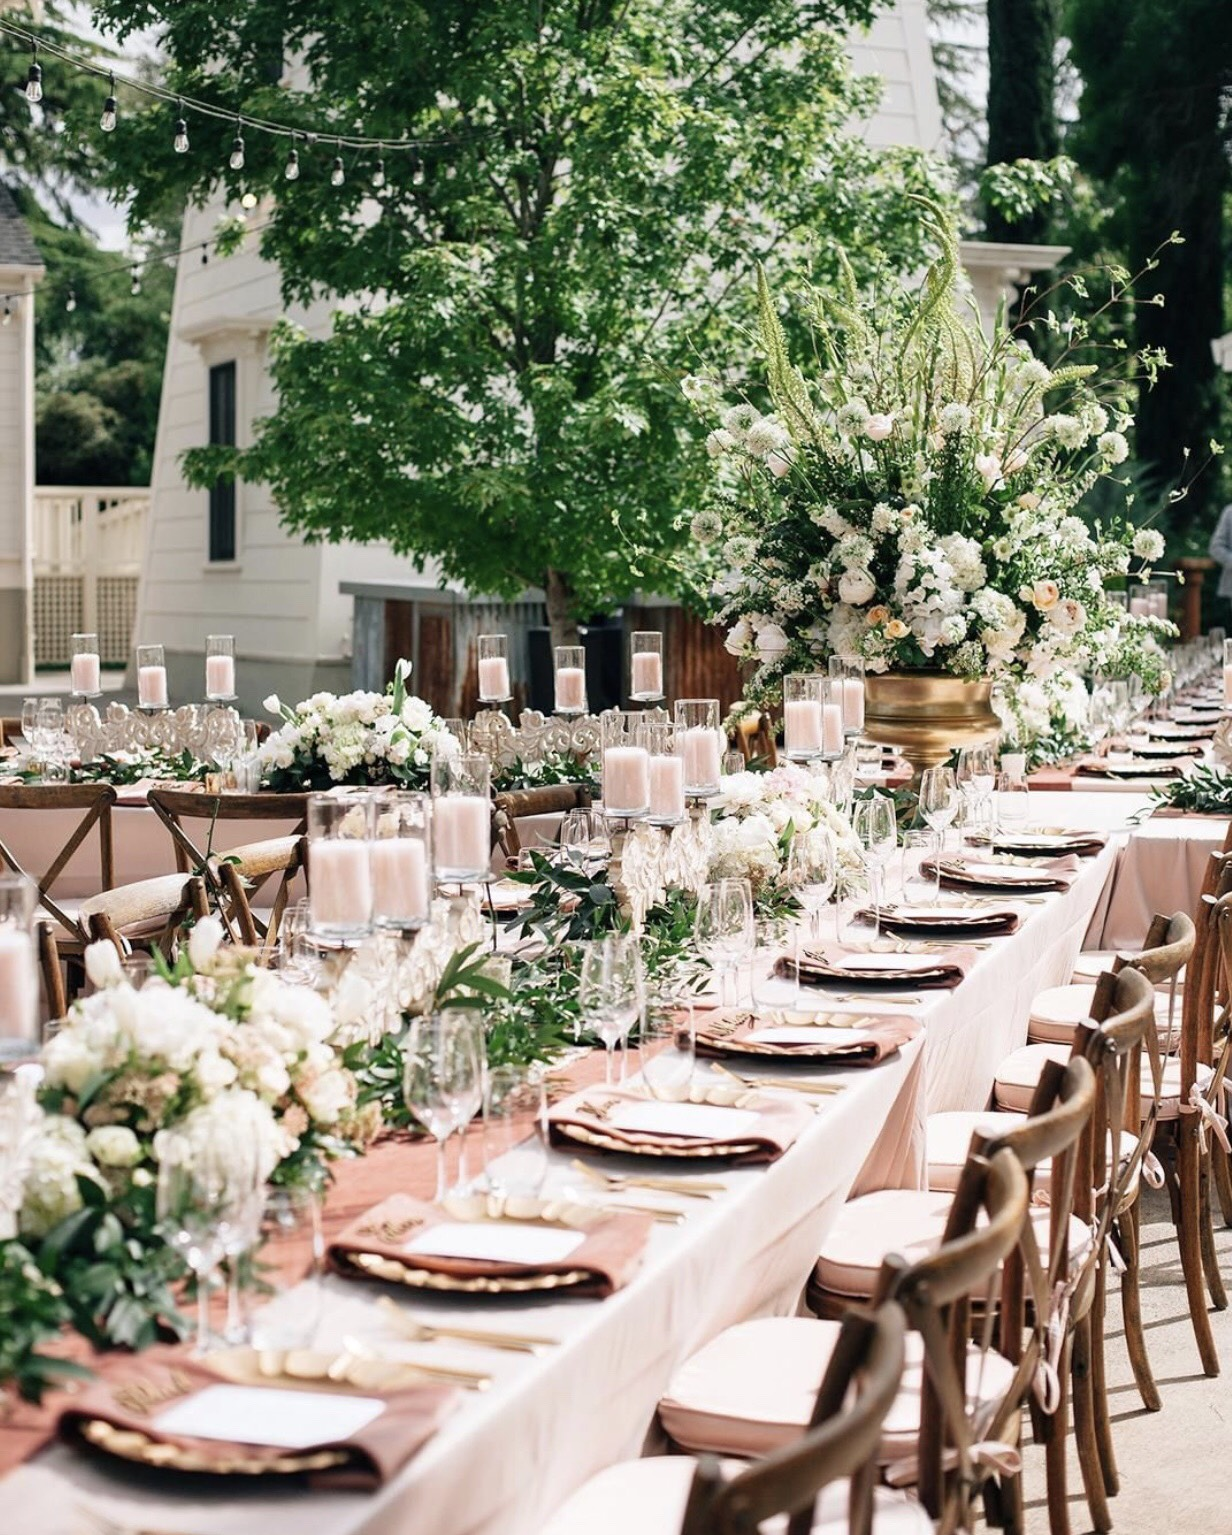 Football (and Super Bowl ads!) might be on the minds of many… but we are too busy thinking about the magical Spring weddings ahead! 🌸💍✨🏩🌳🌳 Photo:  @annaperevertaylo  | Florals:  @dixonflorist  | Coordination:  @alluring.events  | Linens:  @latavolalinen